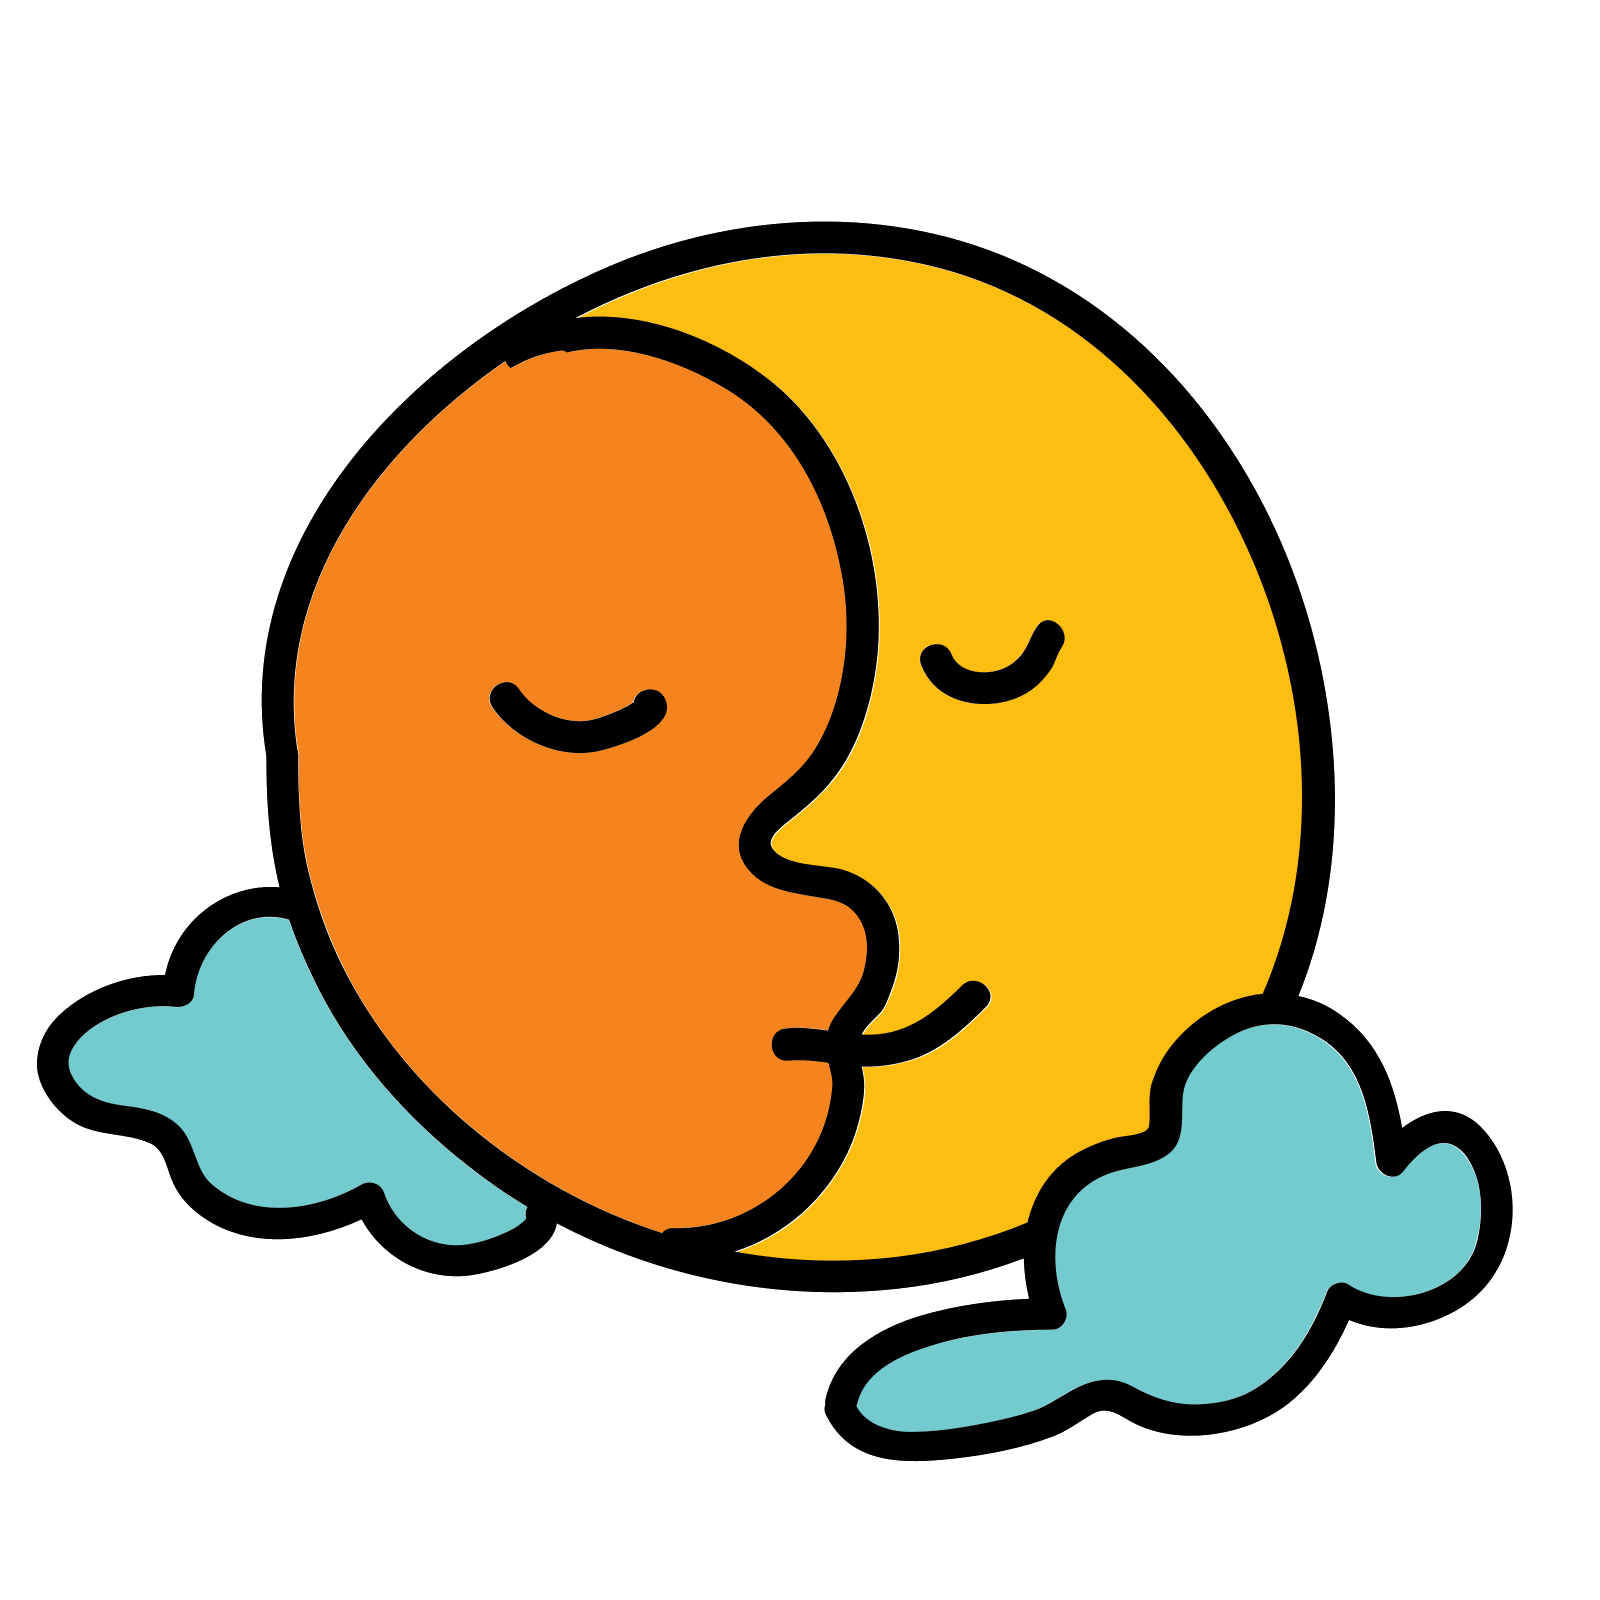 Sun vector png. Moon and icon free